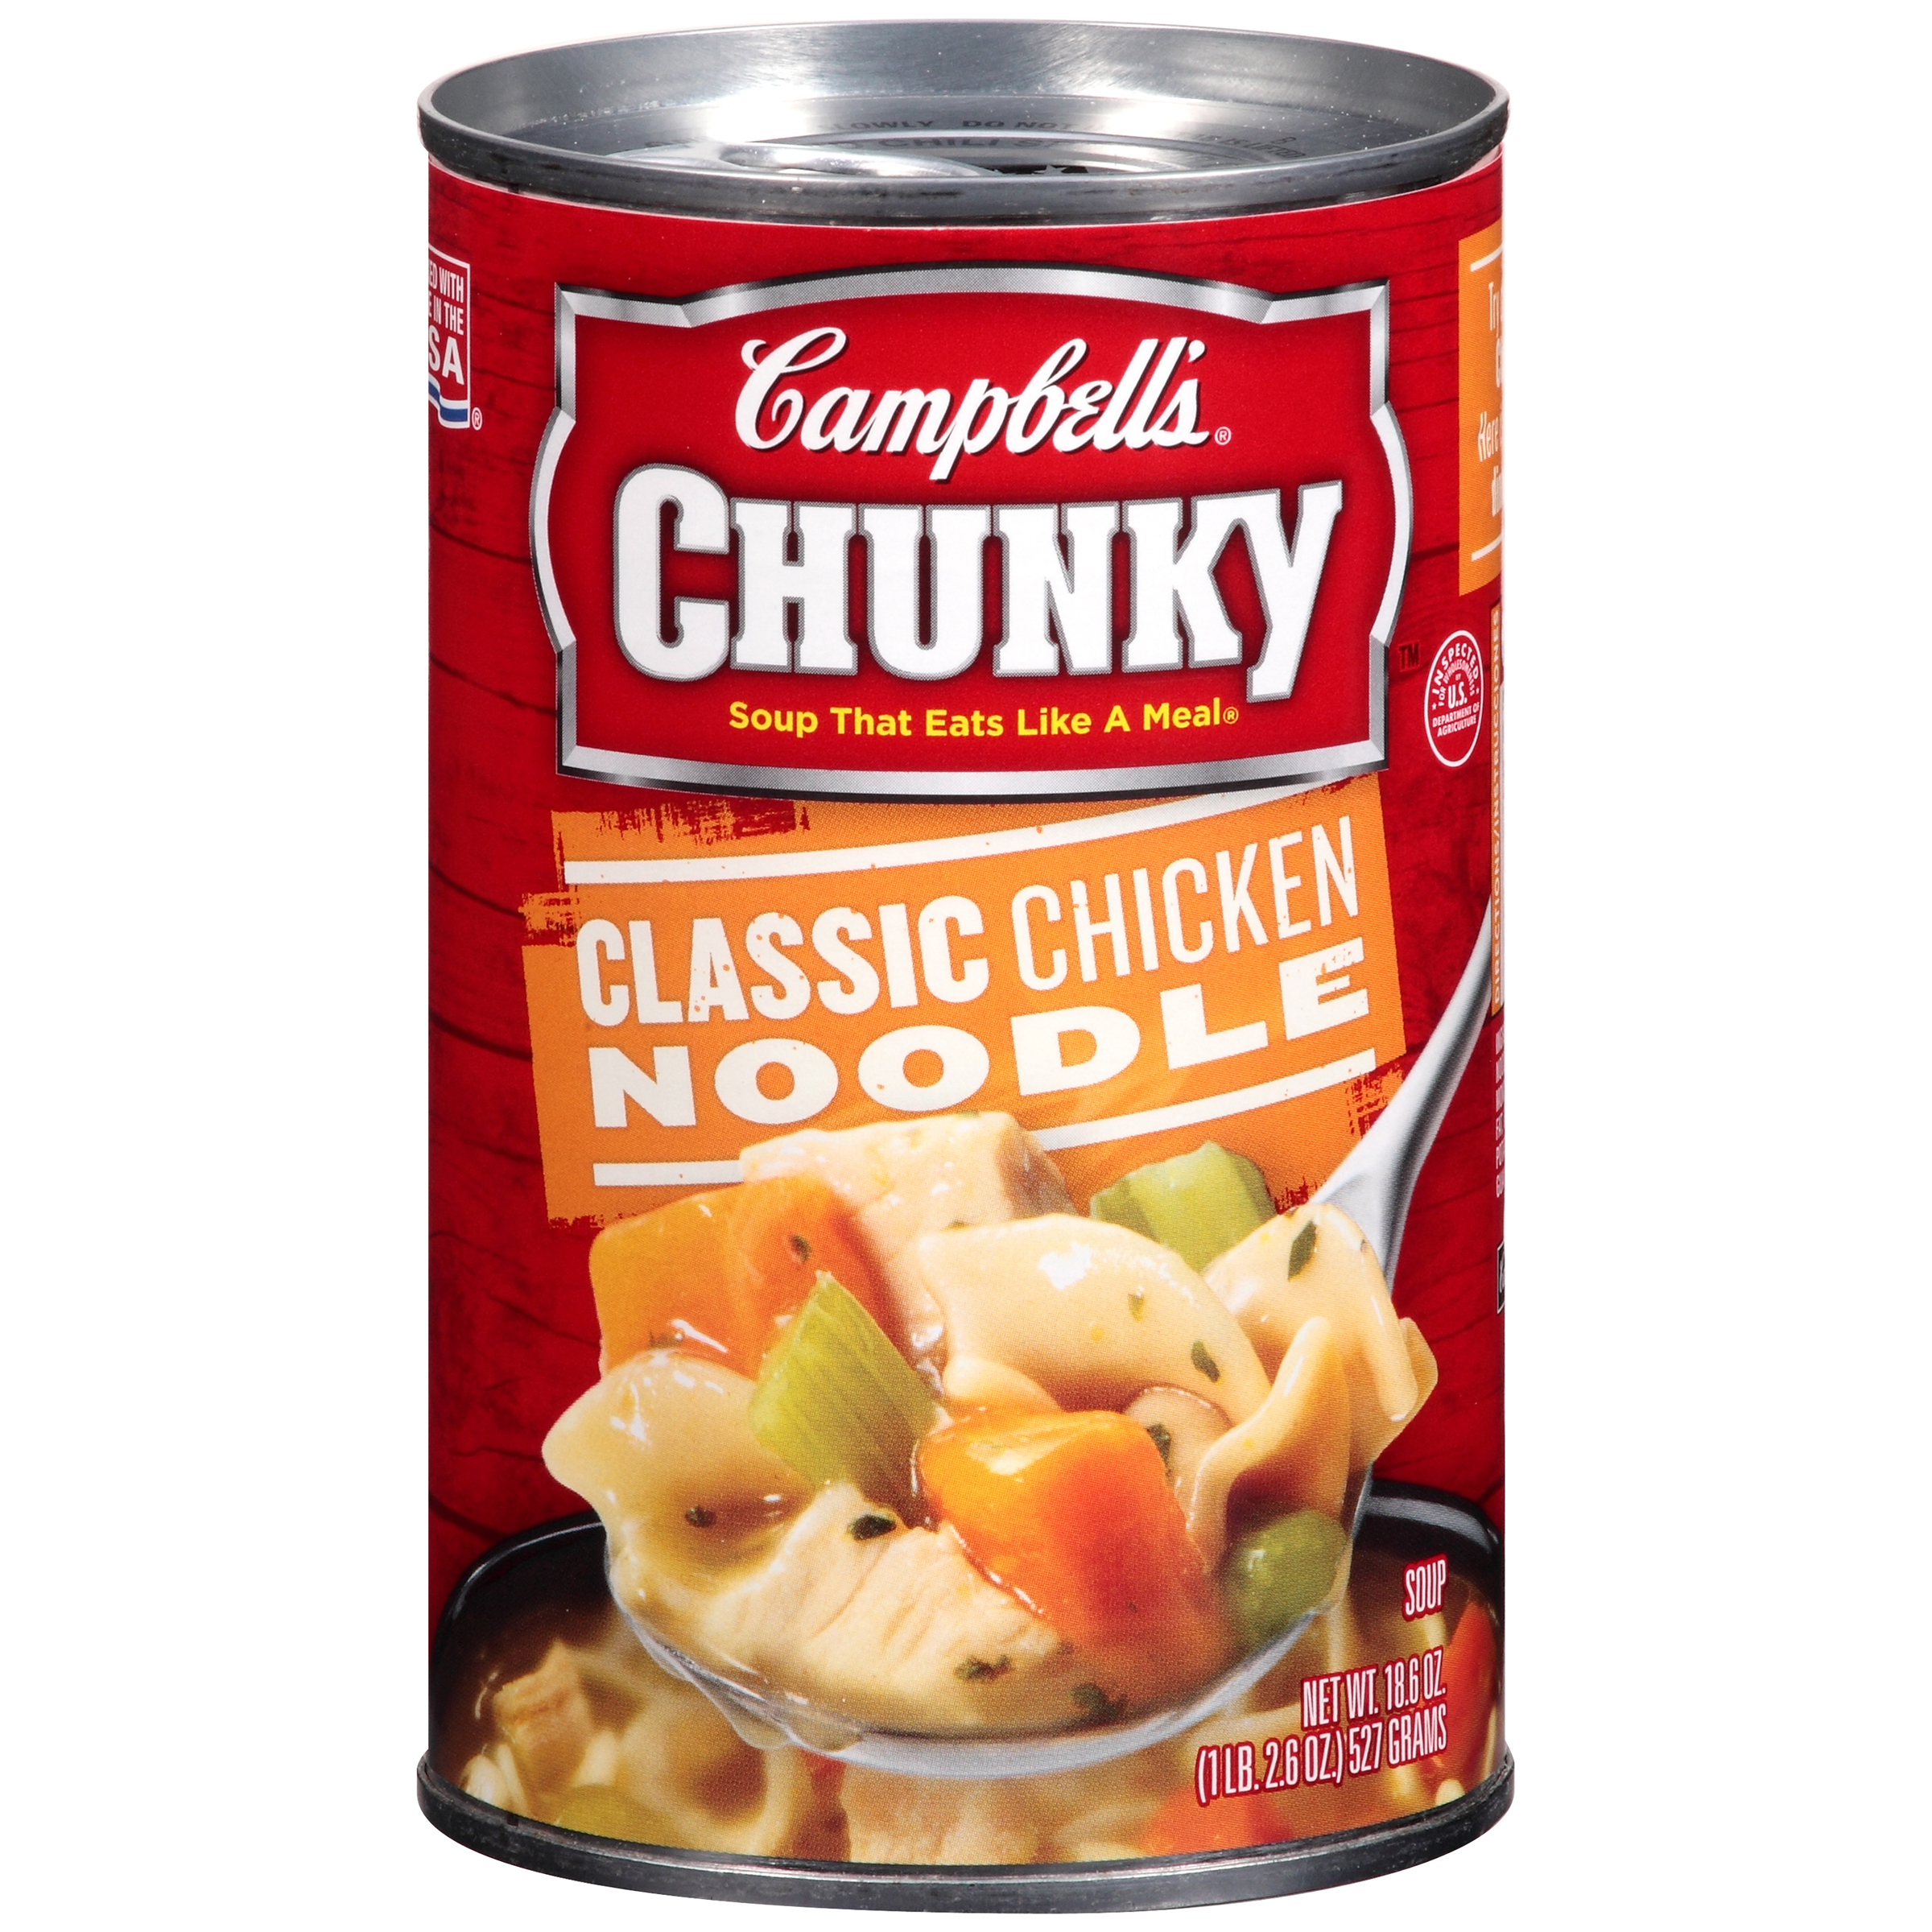 Campbells Chunky Classic Chicken Noodle Soup 18.6ozWalmart.com